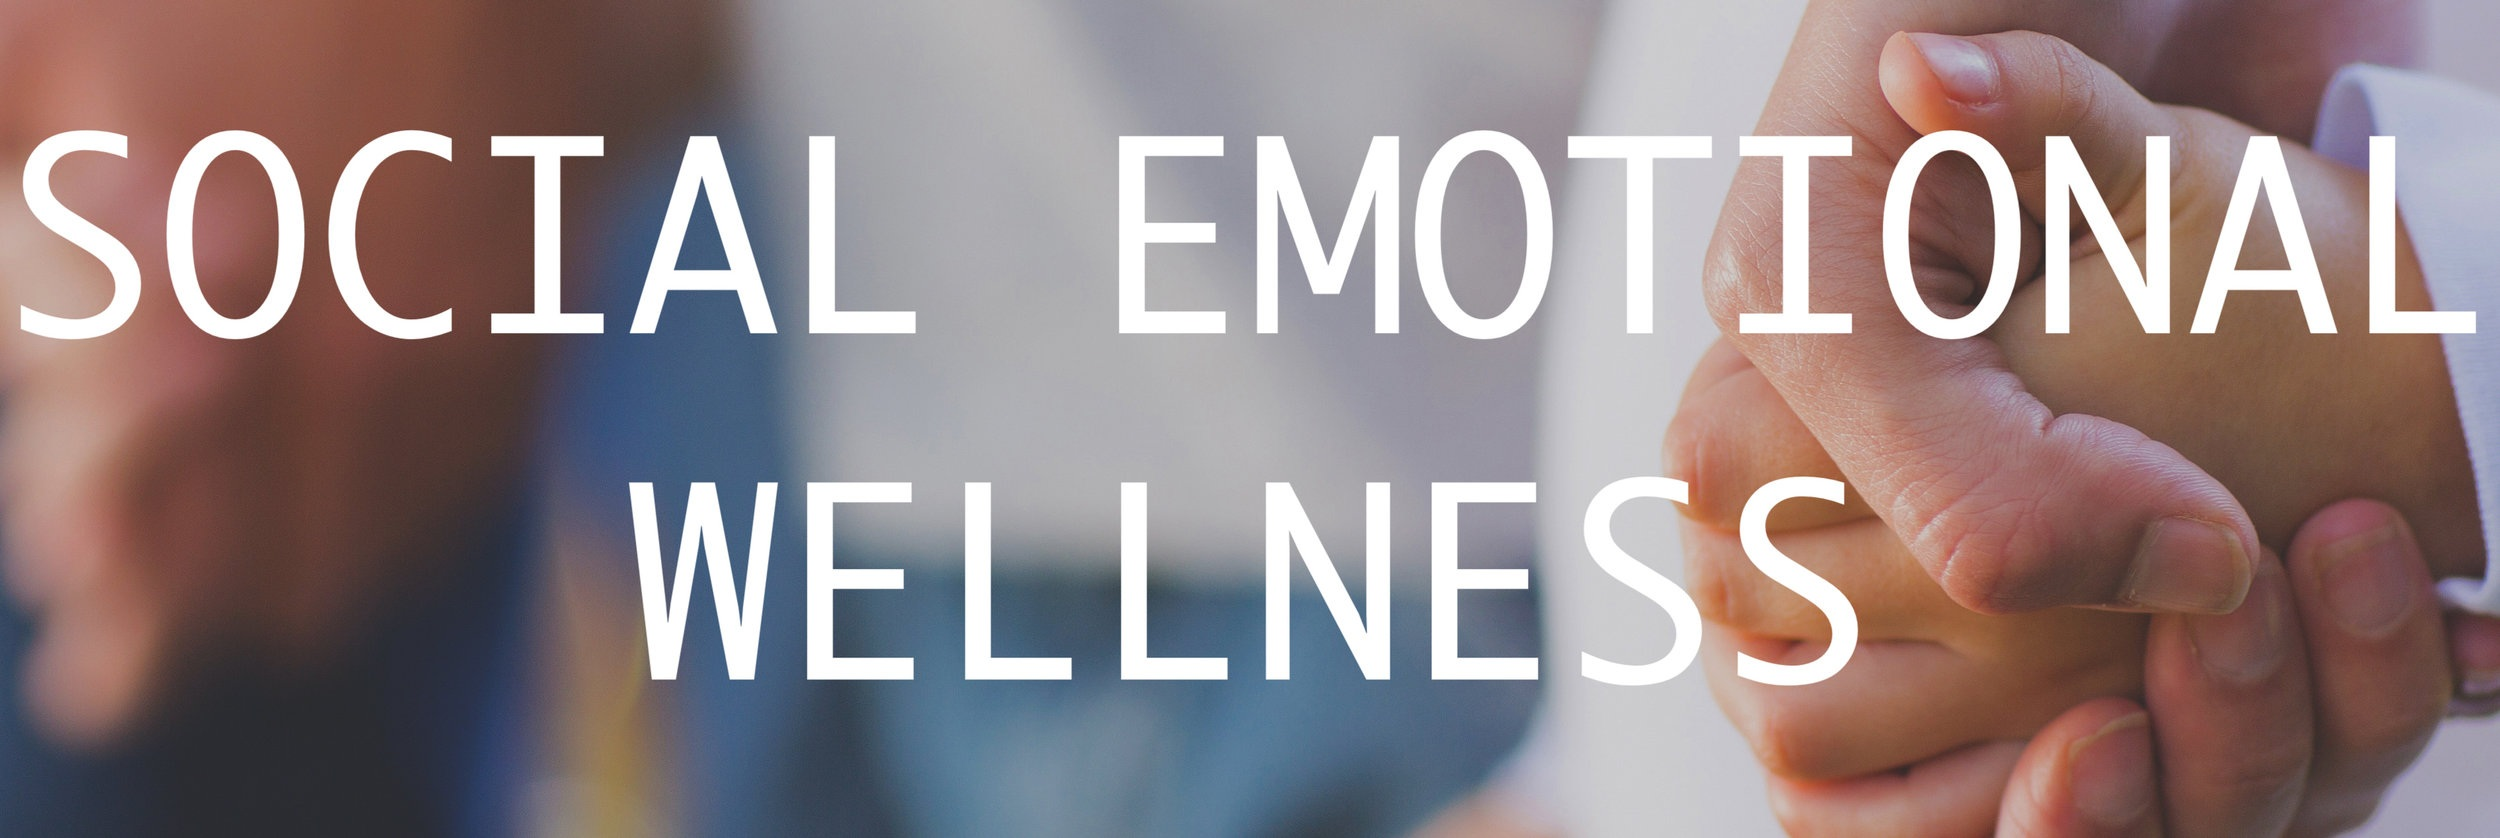 SOCIAL+EMOTIONAL+WELLNESS